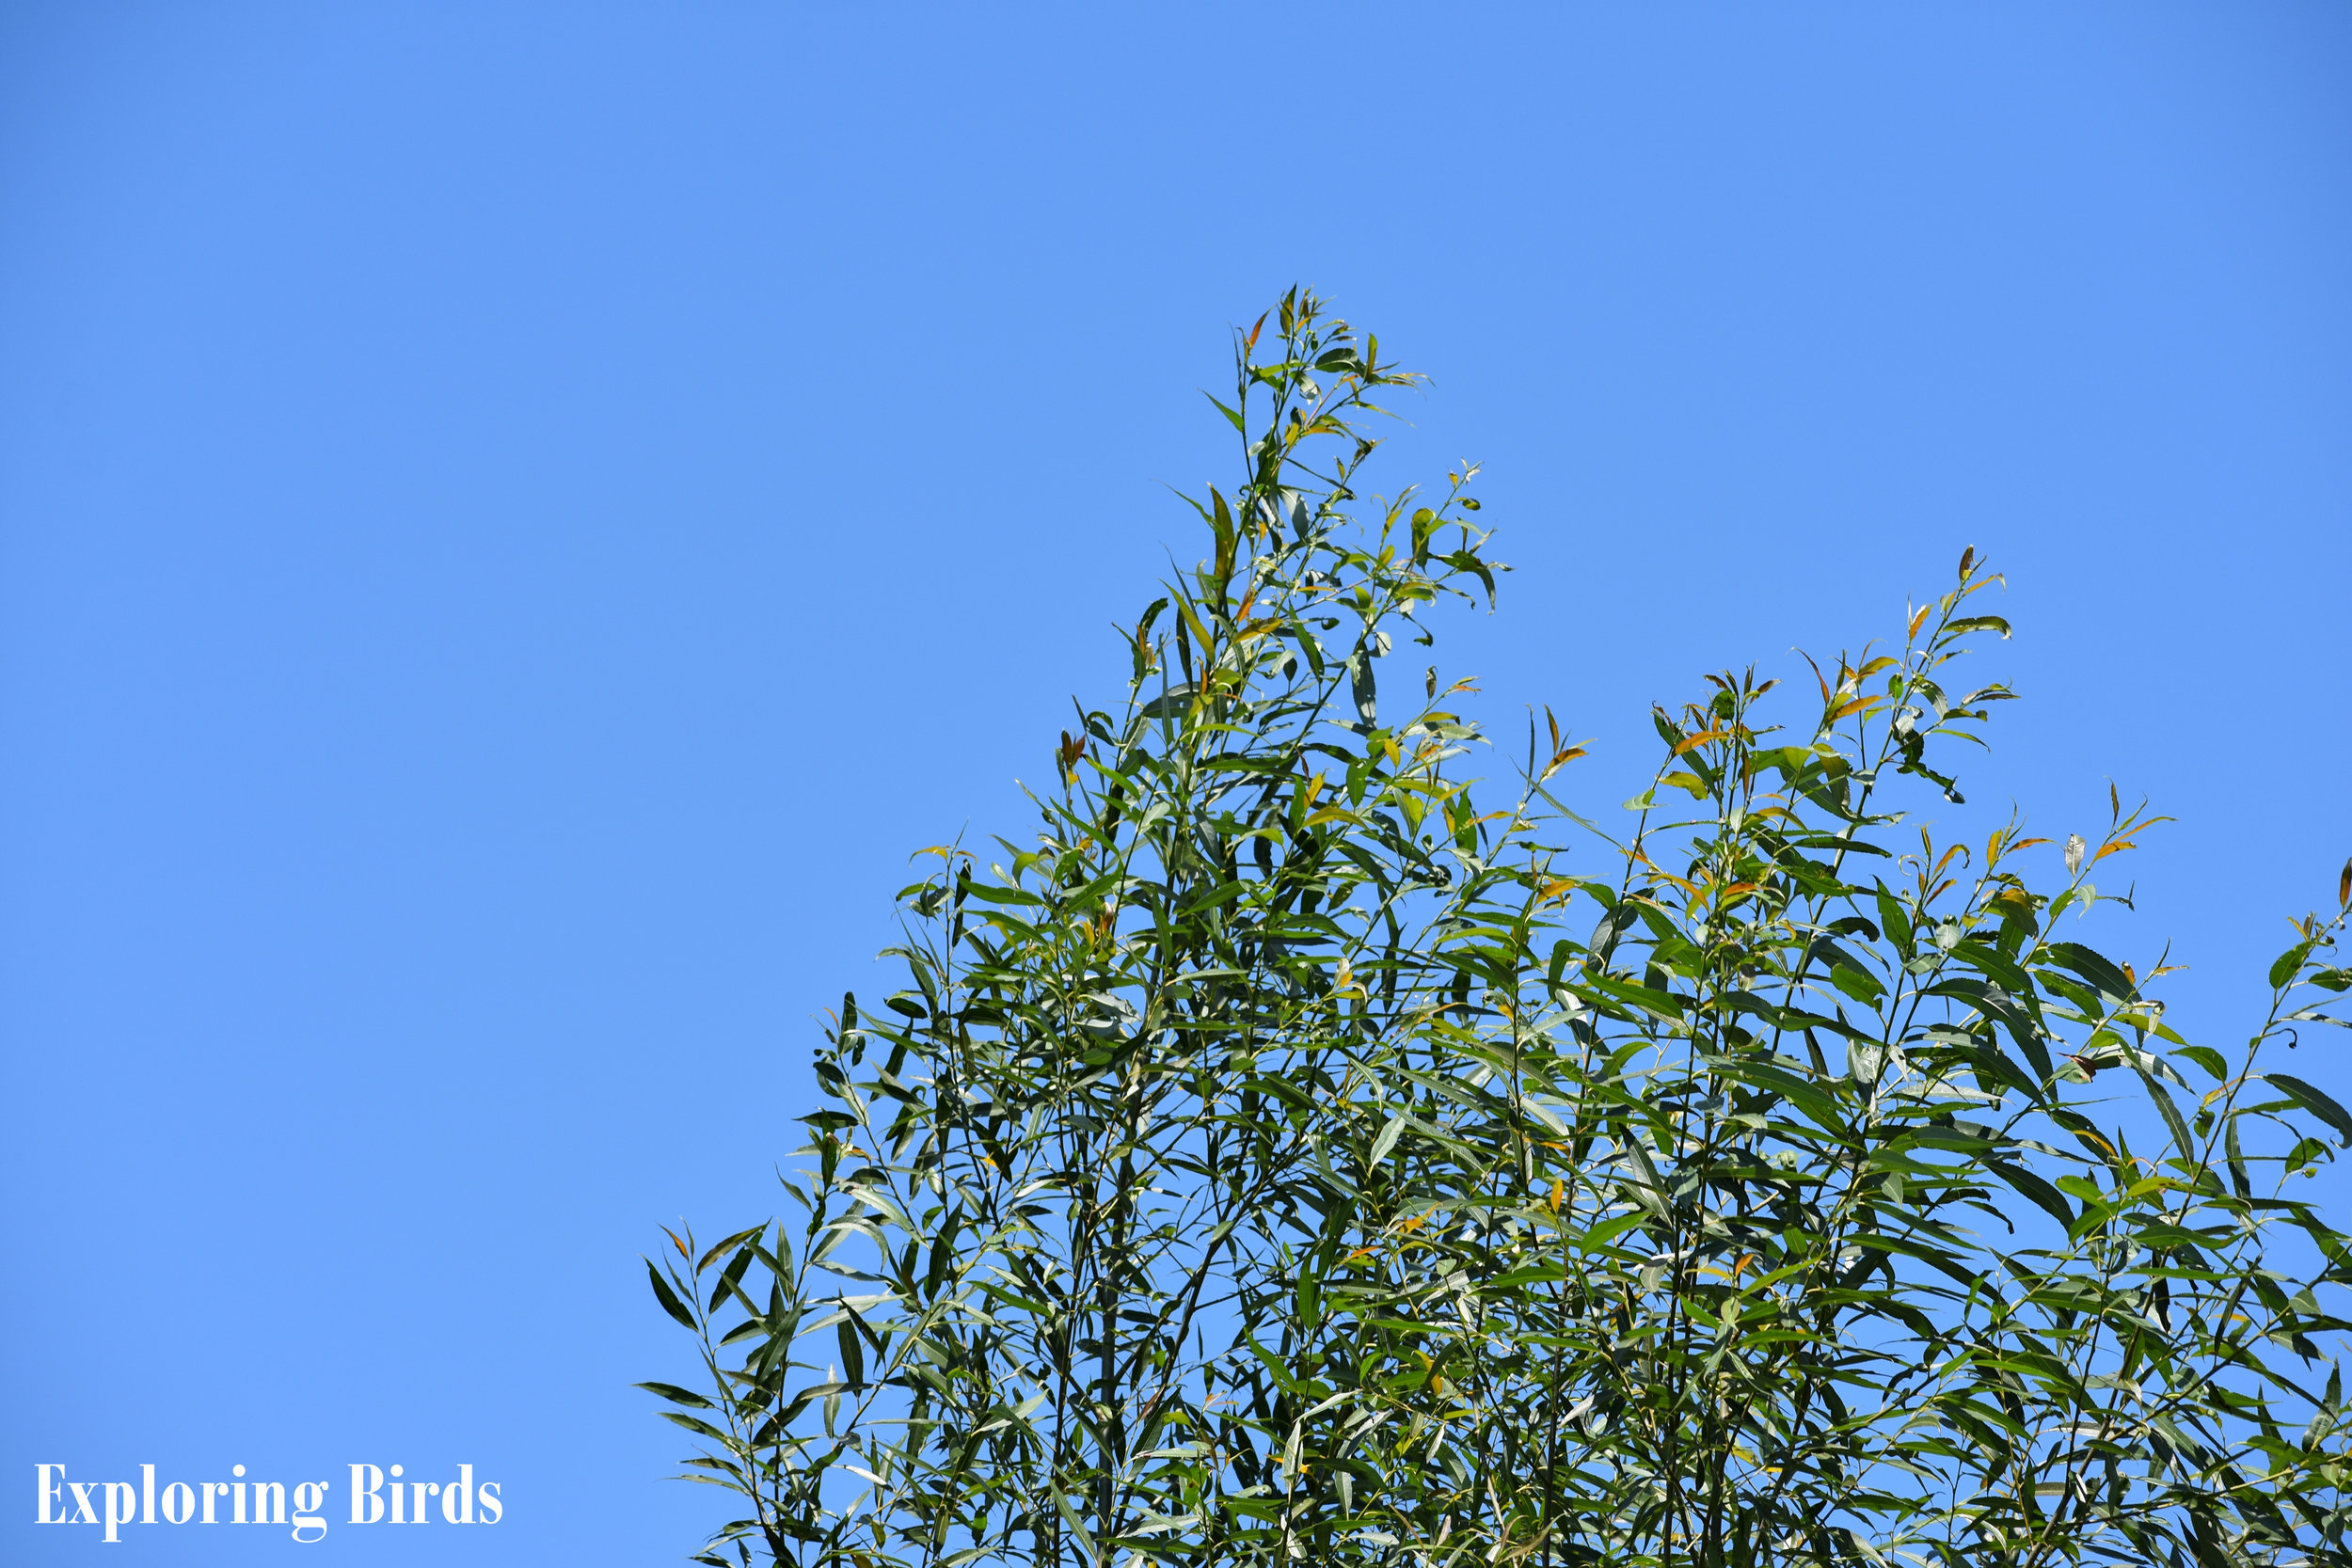 Black Willow is a tree that attracts birds